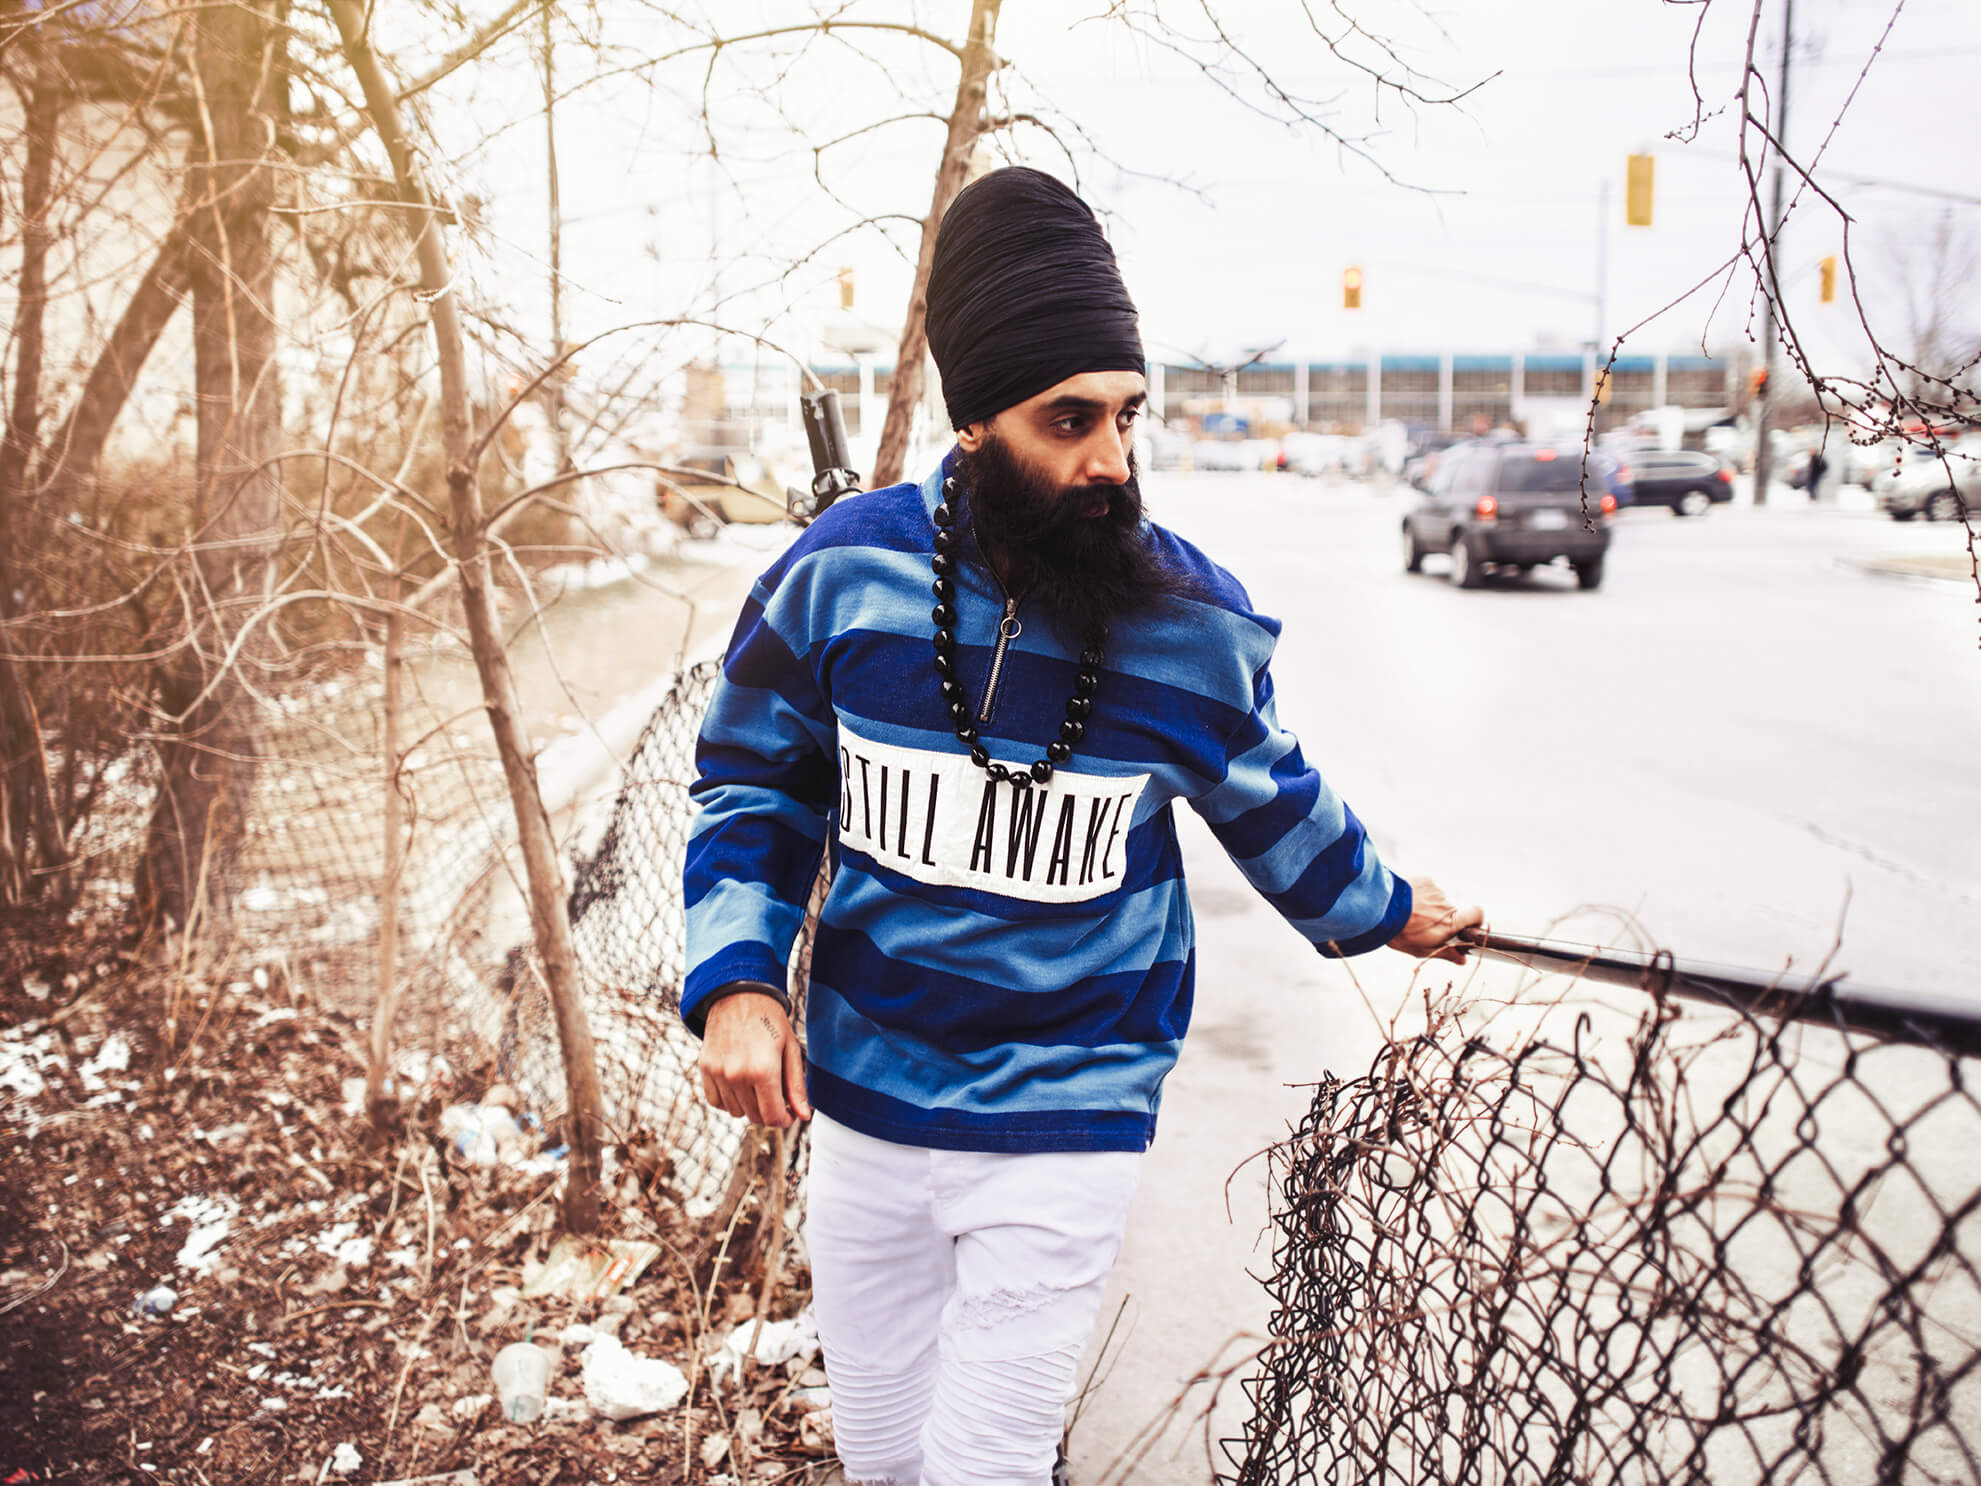 Unified Content Toronto, Unified Content, Max Rosenstein, Humble the Poet, Kanwer Singh, MC, Spoken Word Artist, Toronto, Ontario, Canada, Toronto Celebrities, Toronto Art, Toronto Artists, Photography, Portrait, Portrait Photography, Toronto advertising, advertising, toronto scenery, toronto streetstyle,